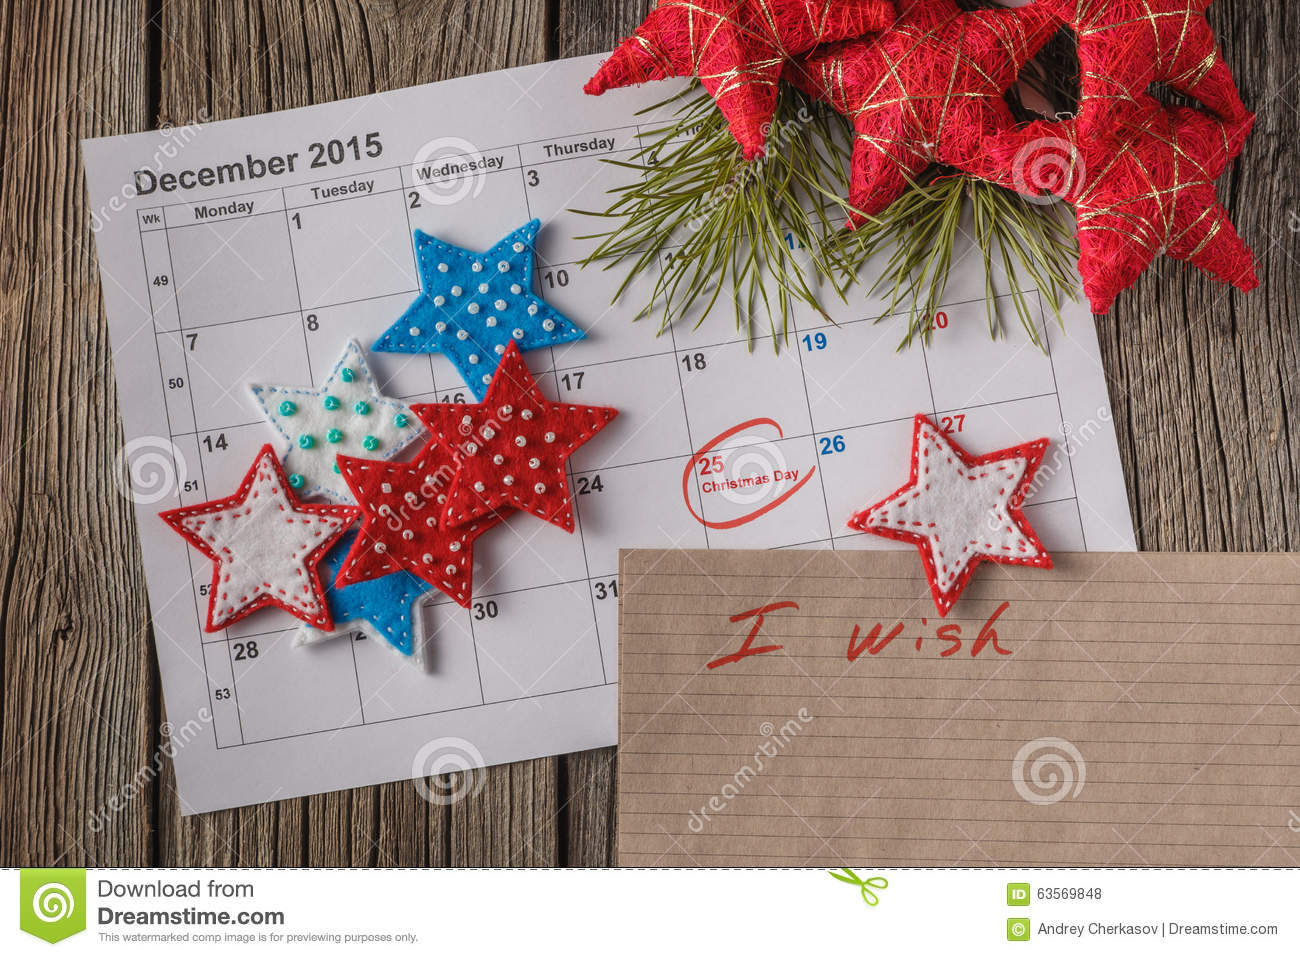 calendar with marked date of christmas day - Whens Christmas Day